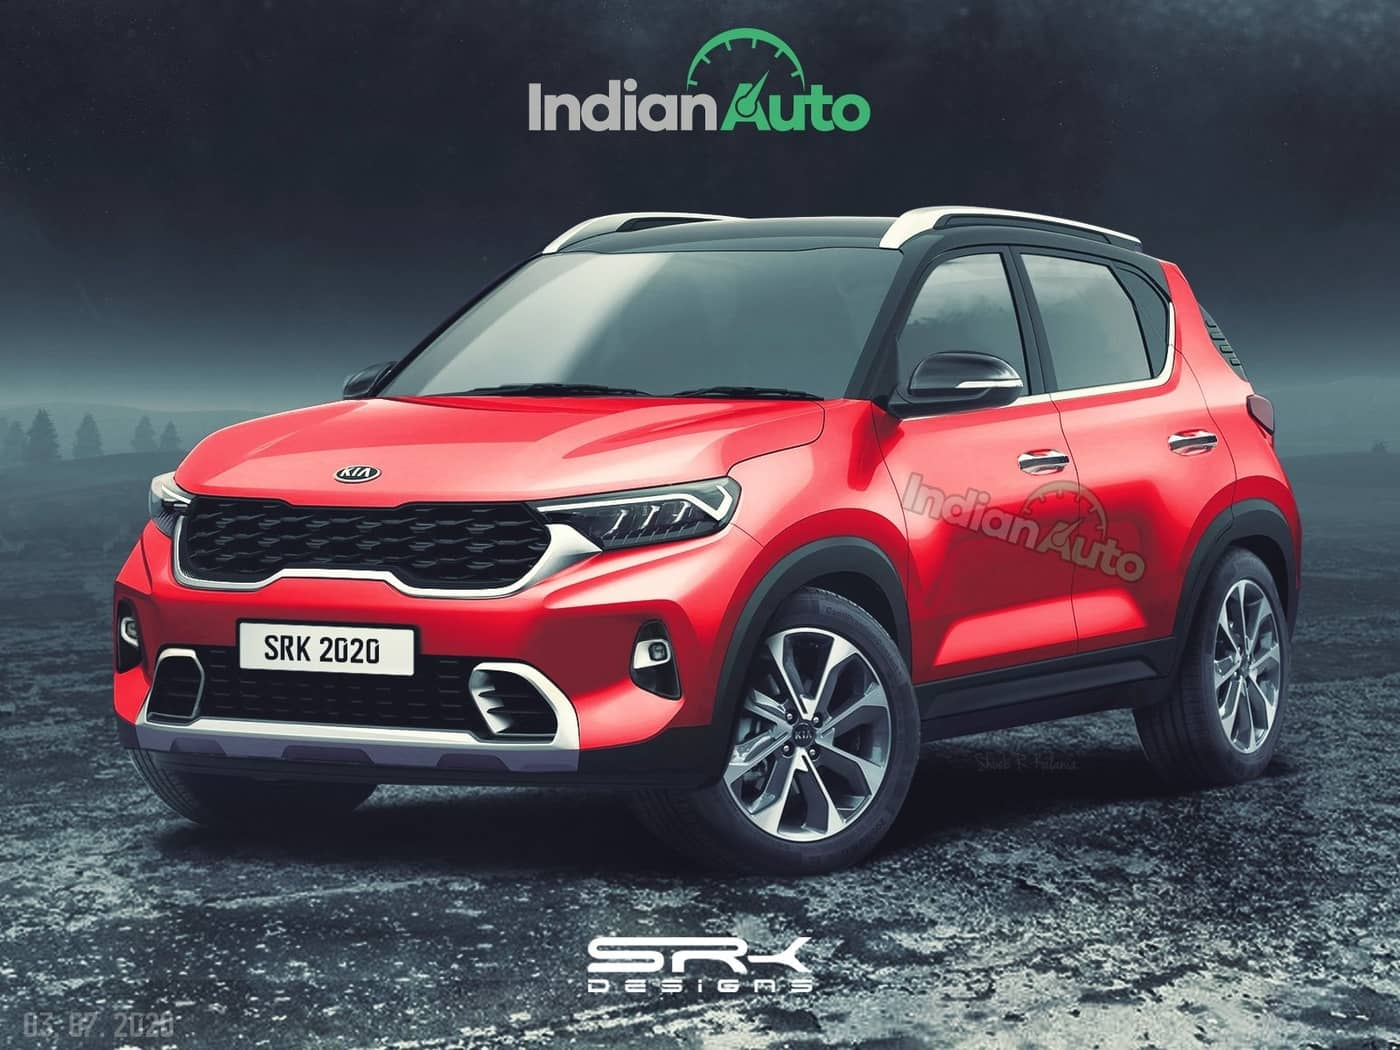 Production-Spec Kia Sonet (Maruti Brezza/Venue Rival) Rendered